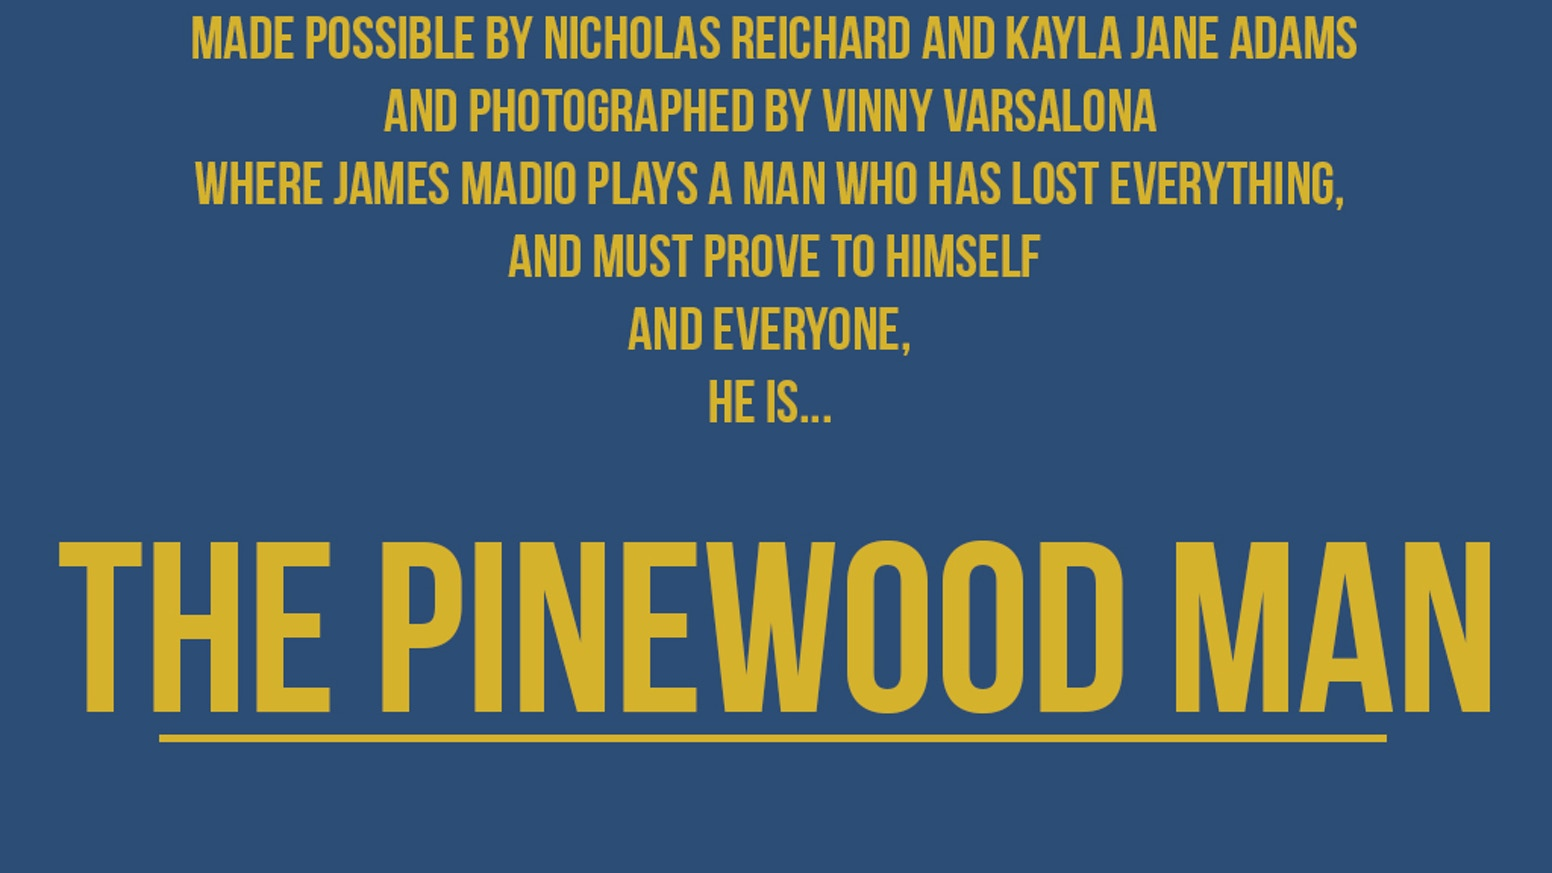 the pinewood man a short film starring james madio by gage hanlon